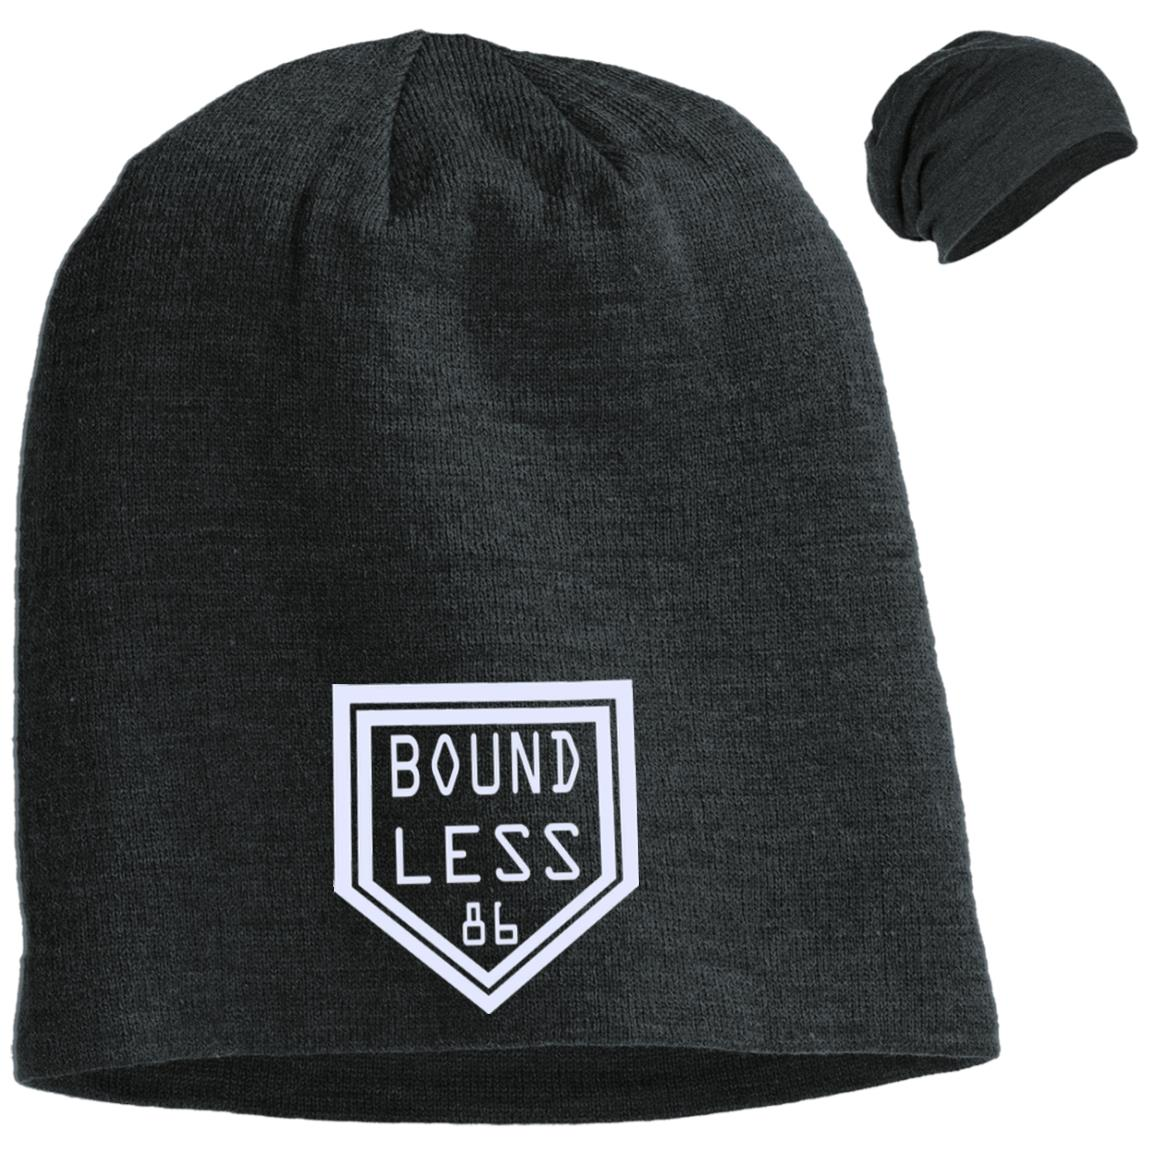 Boundless | Uni-sex Slouch Beanie